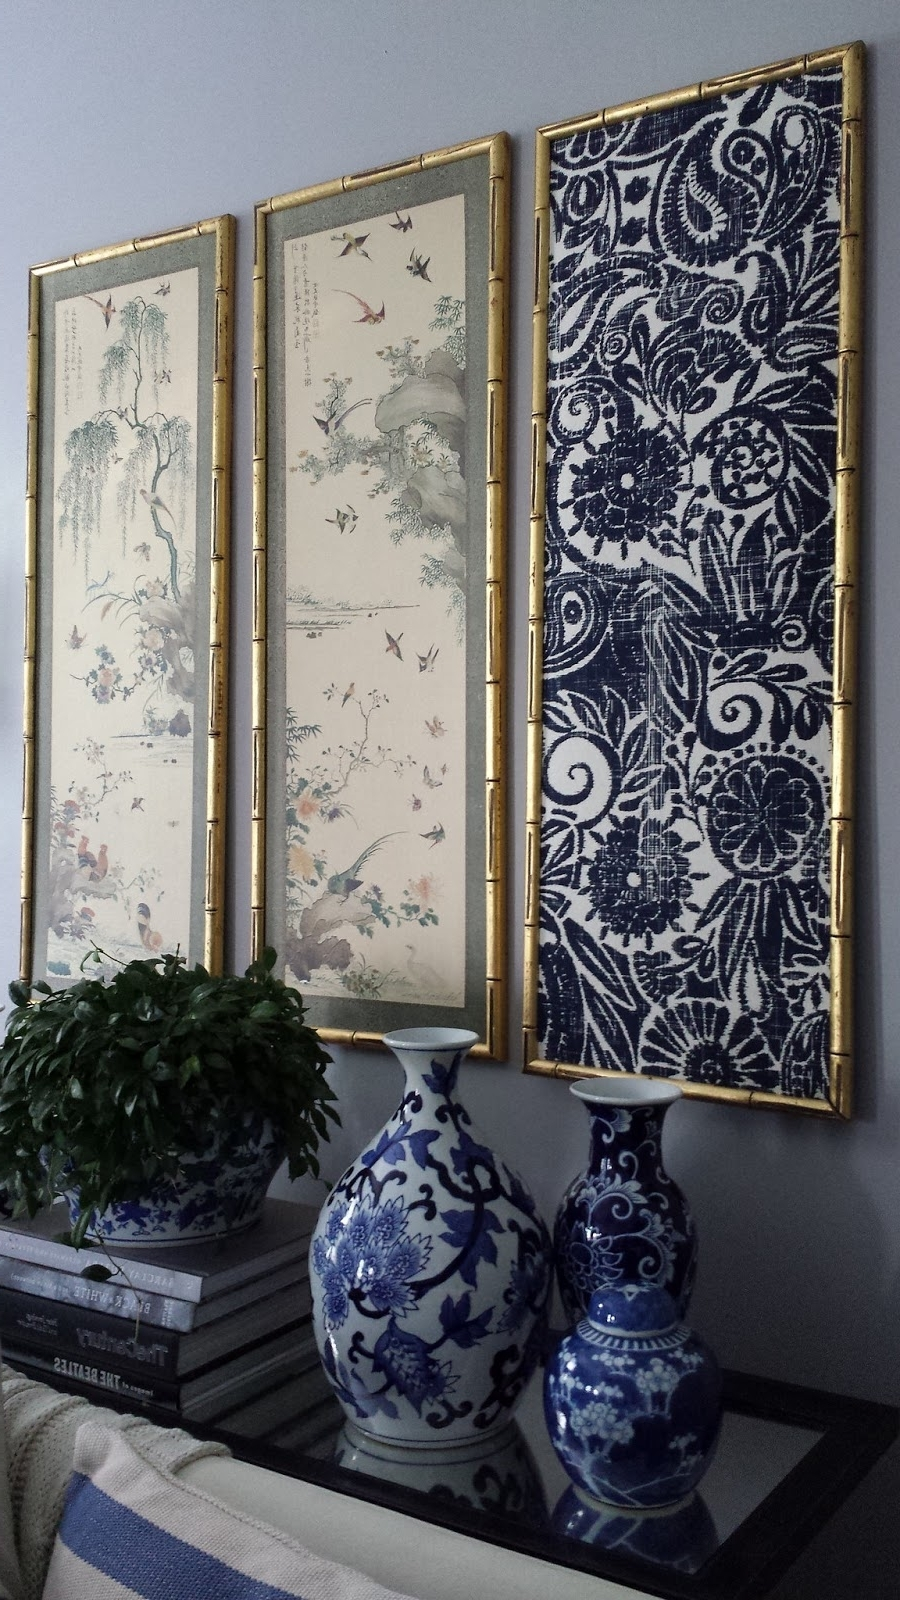 Widely Used Focal Point Styling: Diy Indigo Wall Art With Framed Fabric For Diy Large Fabric Wall Art (View 11 of 15)